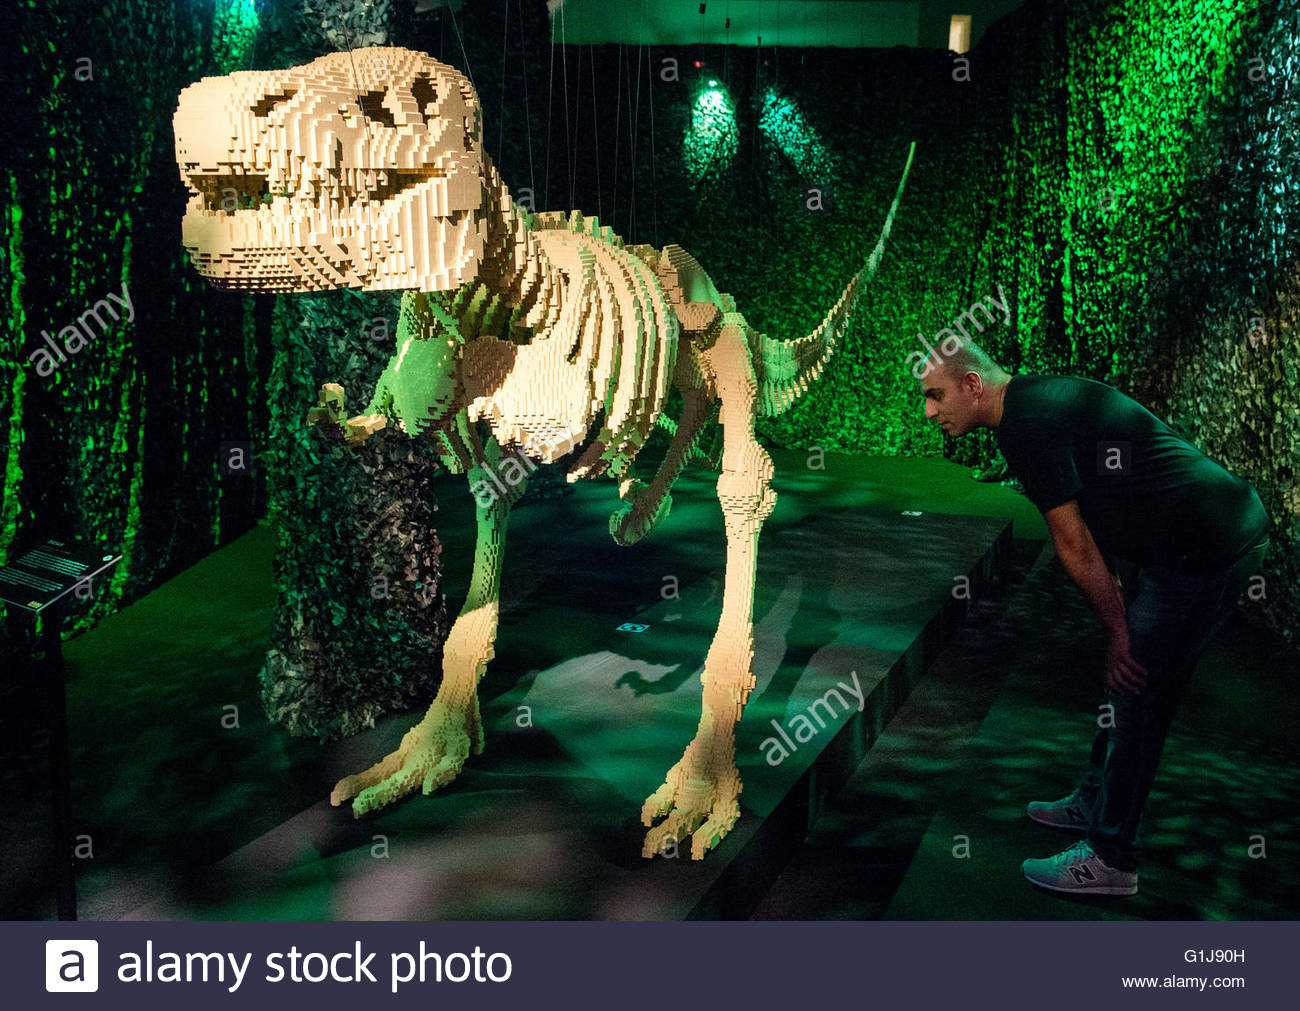 A man looks at the piece 'Dinosaur' made of Lego blocks, by the American artist Nathan Sawaya in the exhibition Stock Photo